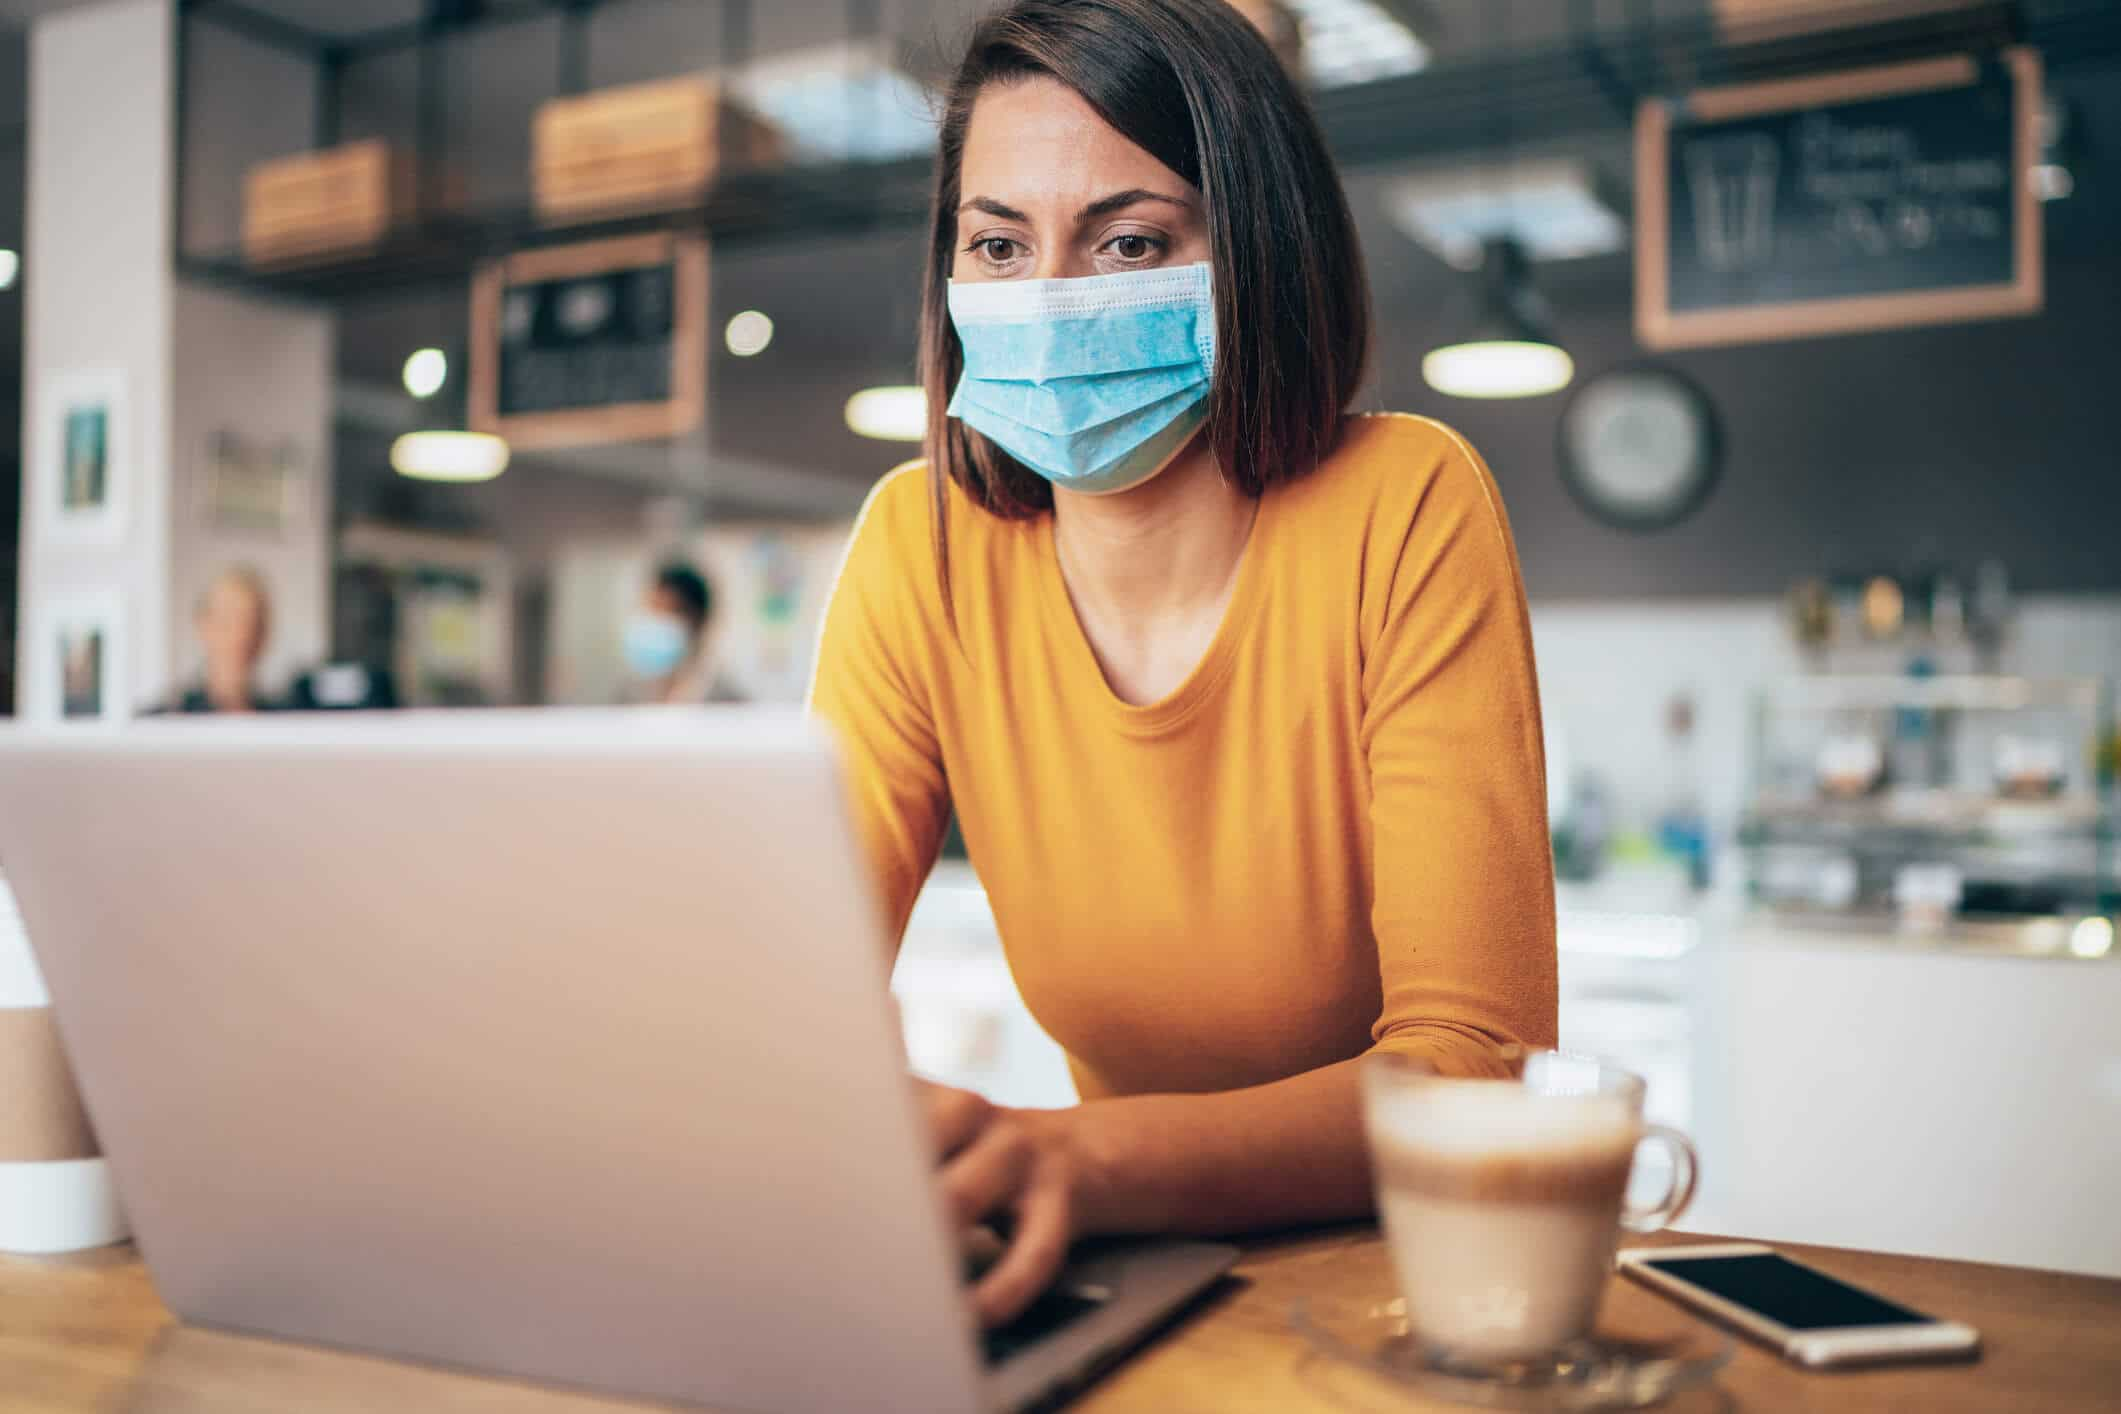 Small business owner wearing a medical mask and working on computer